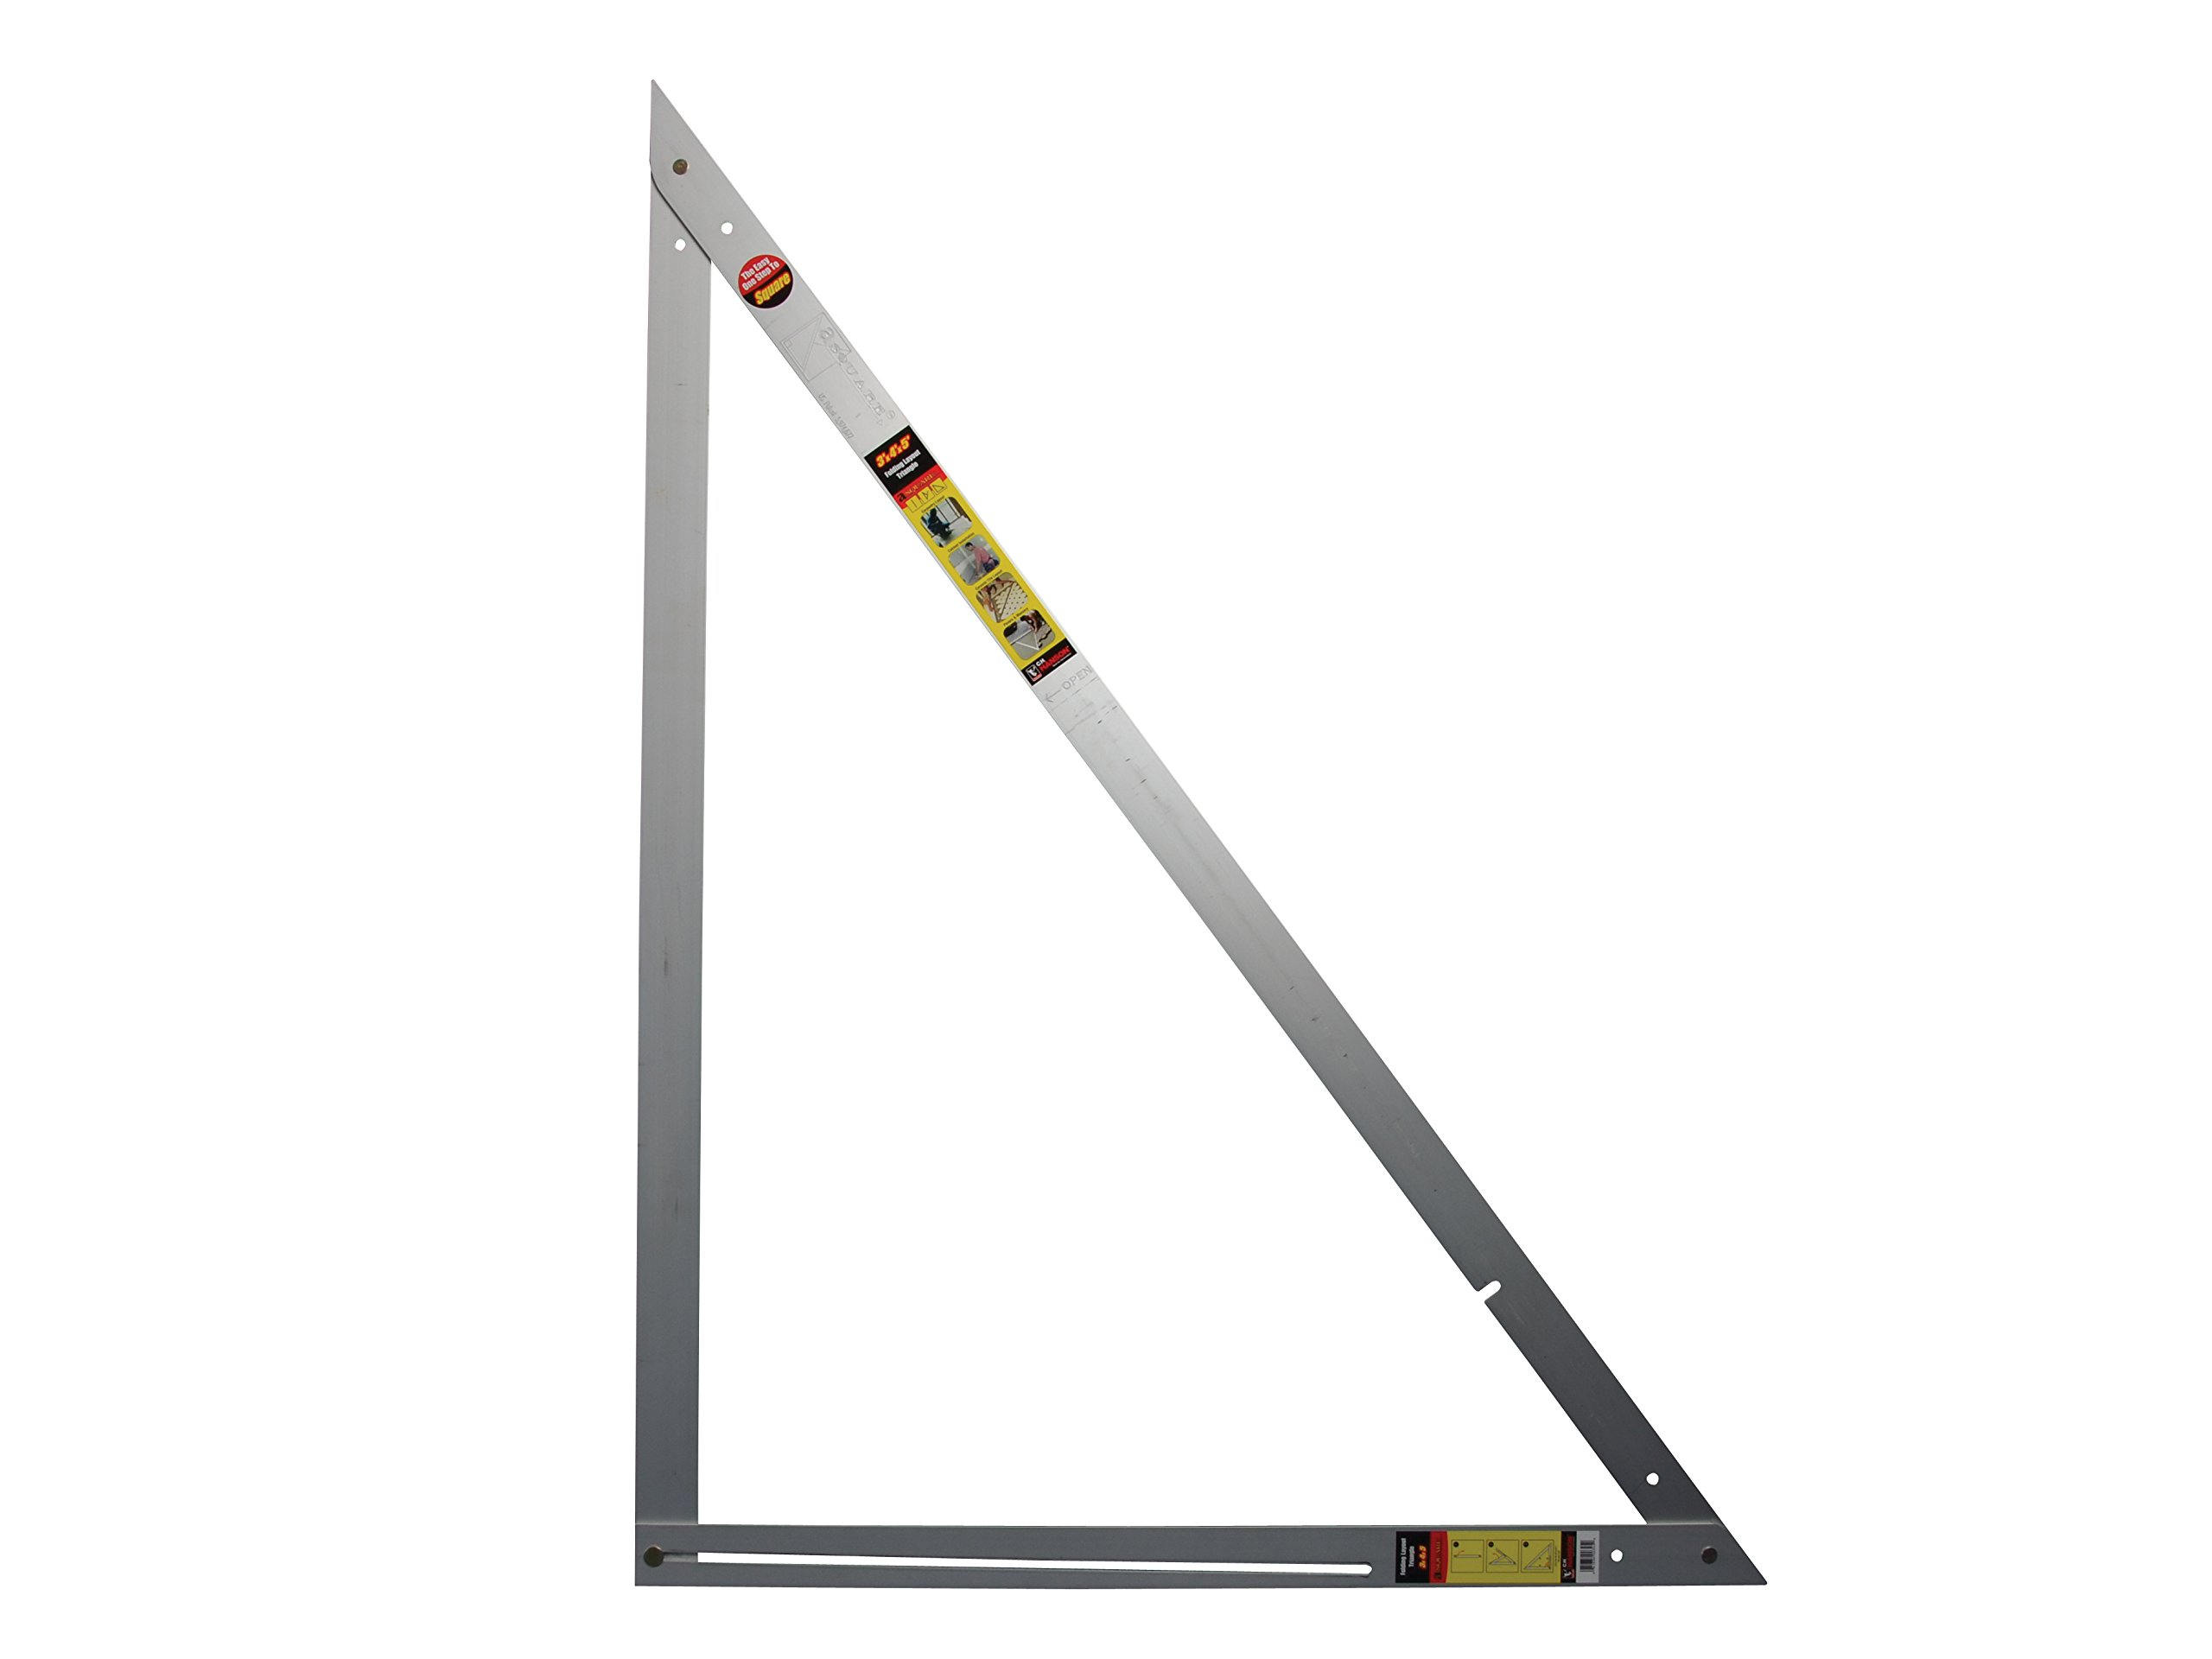 CH Hanson 3 ft. x 4 ft. x 5 ft. 90 degree Aluminum Folding Layout Asquare by CH Hanson (Image #1)